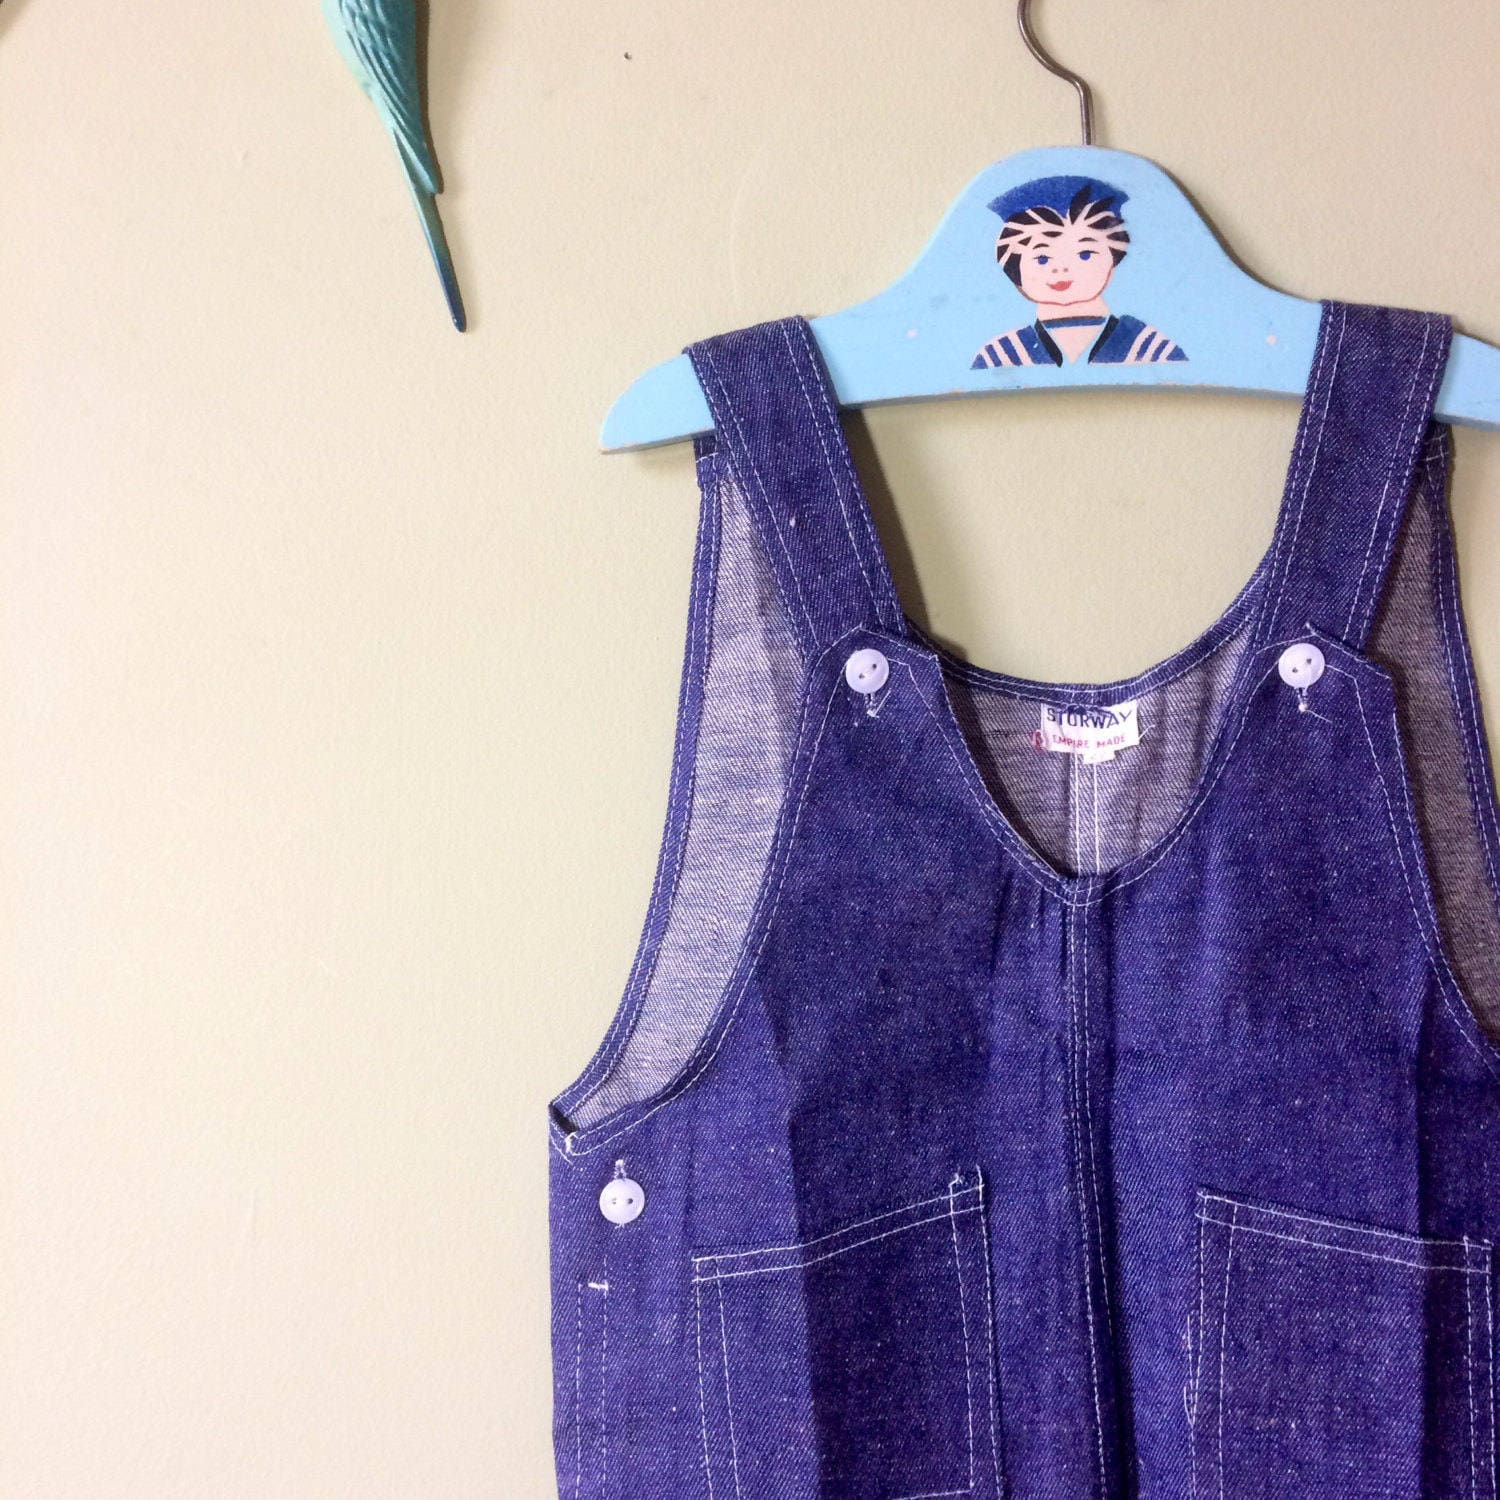 Baby dungarees  baby overalls blue denim. Boys dungarees or girls dungarees. Unworn new vintage 1970s. Age 2 years  age 3 years